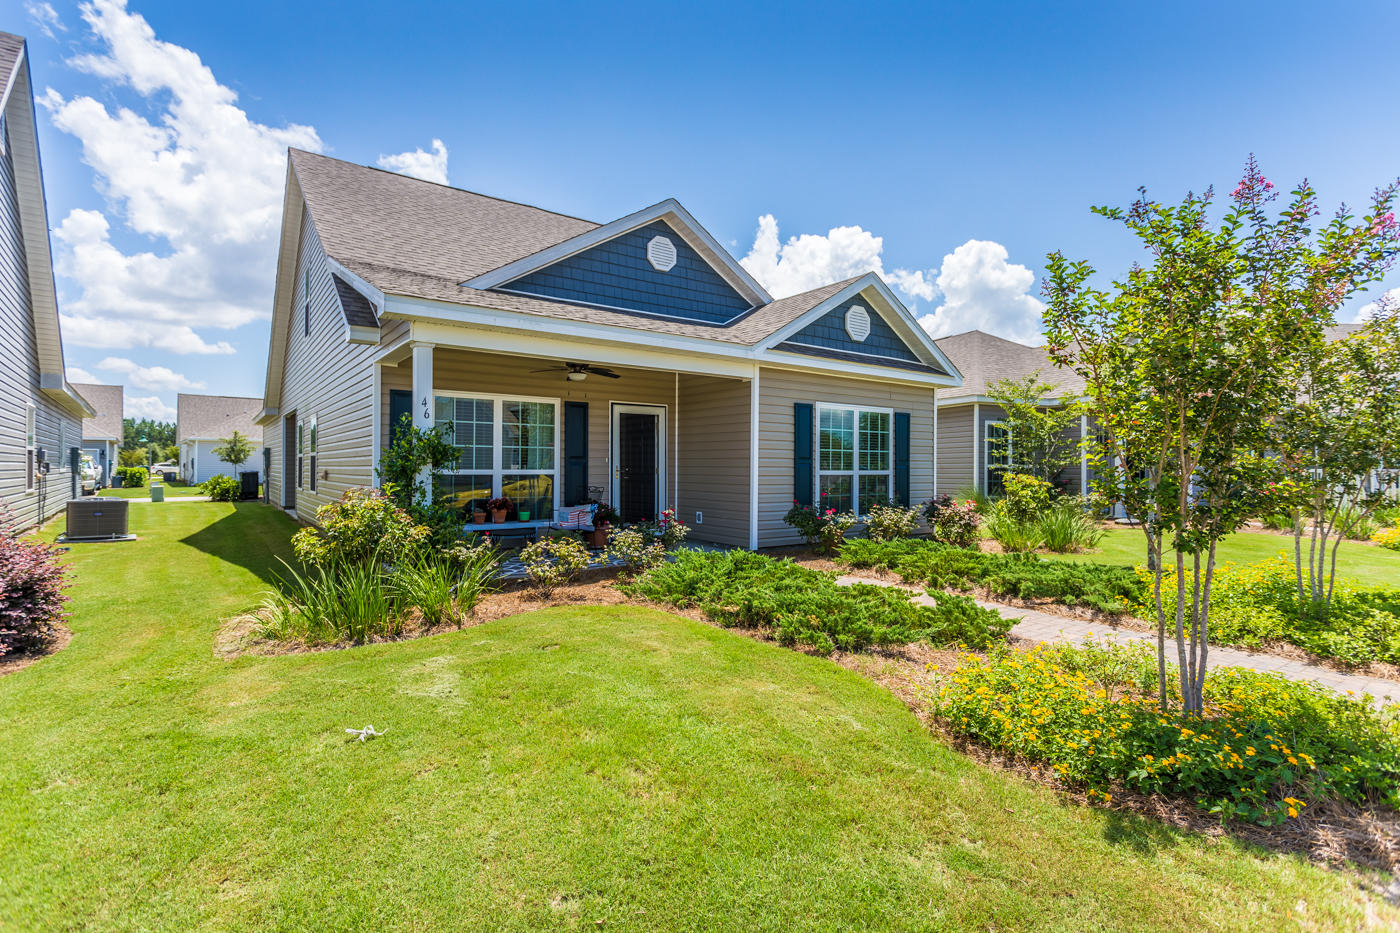 This 4 bedroom, 3 full bath home is two years young and is a great location within the Schooner Landing neighborhood of Hammock Bay. This is one of the larger lots in Schooner. this community is full of amazing amenities you can walk to! The clubhouse and pools, tennis and basketball courts, walking/jogging trails, and you are one block away from the newest park in the Schooner area. This home is well cared for with a Master Suite and Guest Bedroom with Hall Bath on the 1st floor and two additional bedrooms and bath upstairs. With just over 2,000 sq. ft. you have plenty of room to entertain. You will love the island kitchen and big walk-in pantry.